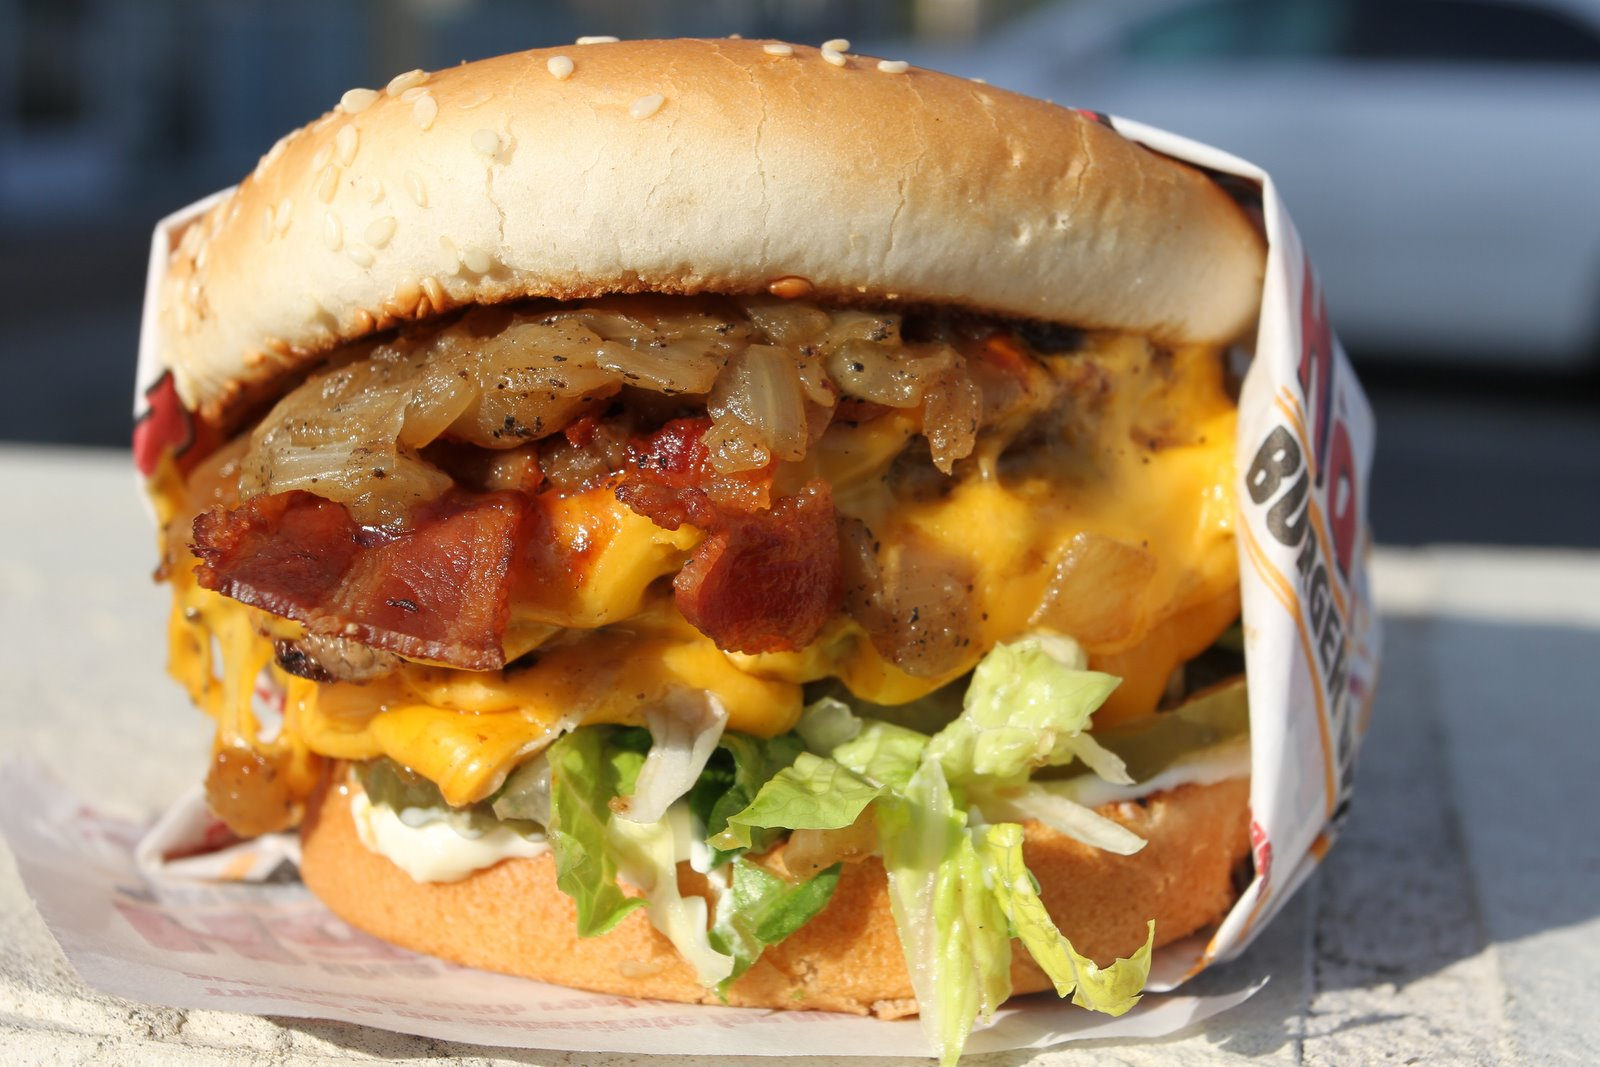 Double BBQ Bacon Charburger - The Habit Burger Grill - Elk Grove, CA